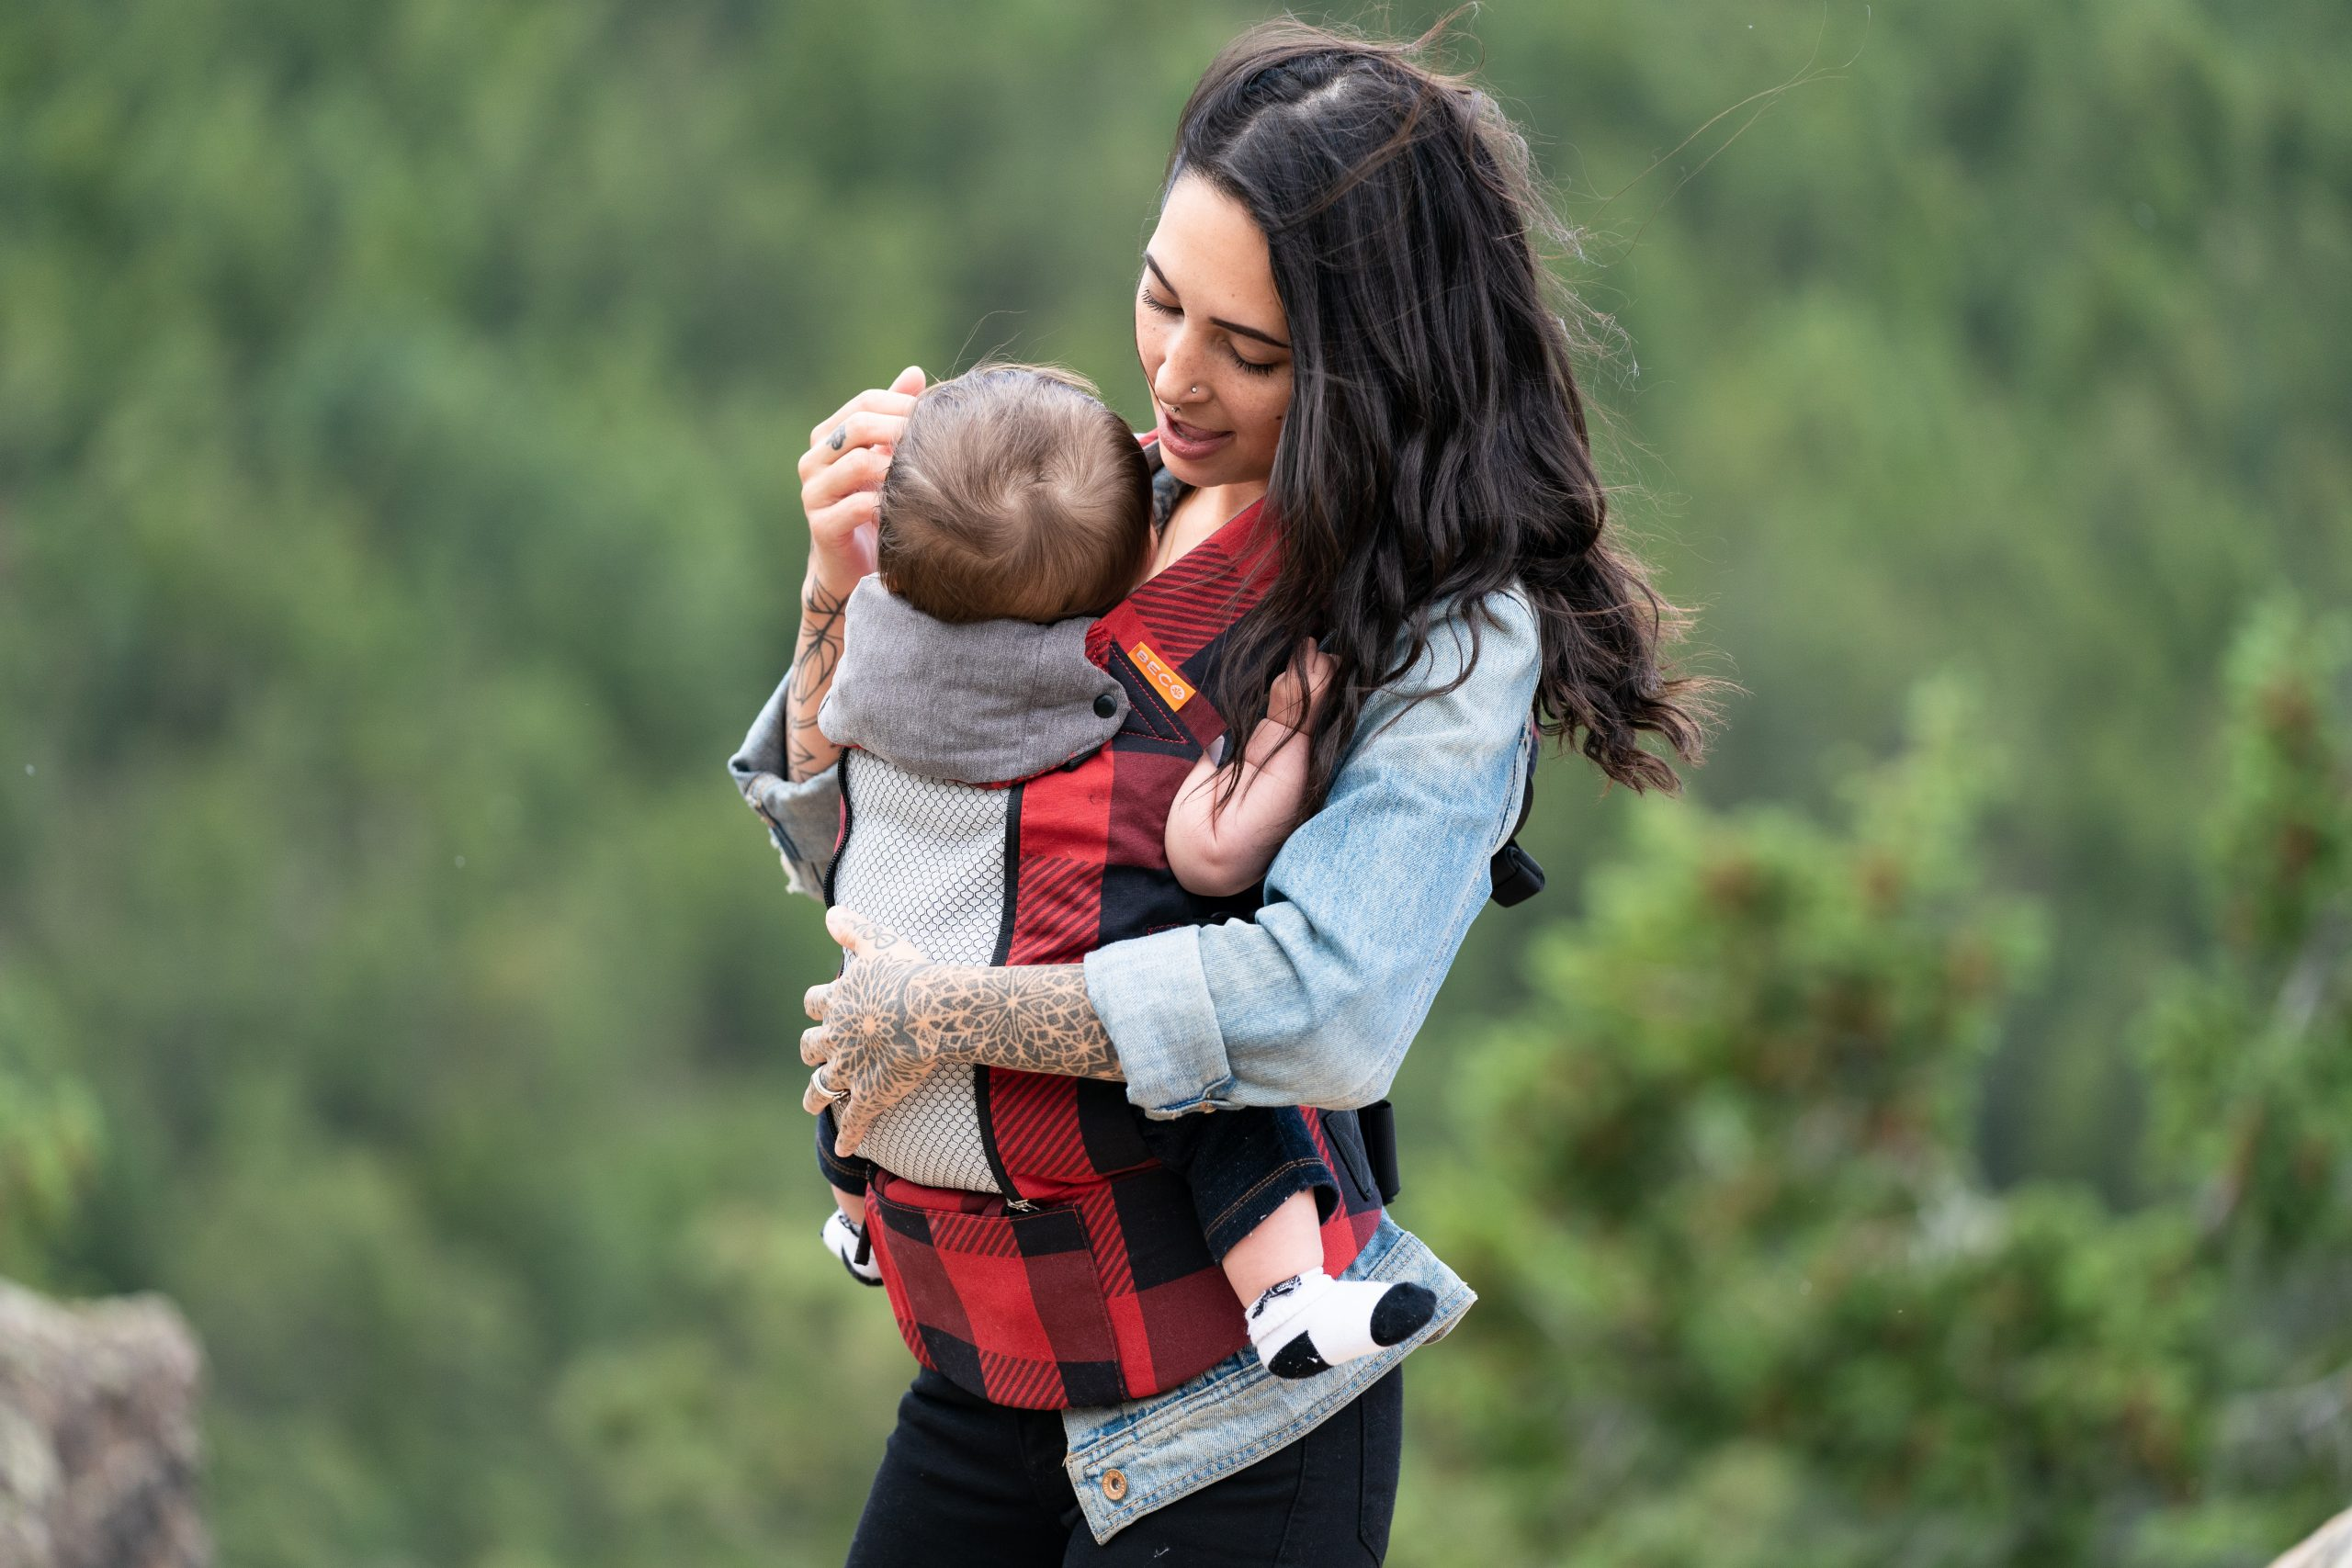 The benefits of babywearing and choosing a sling